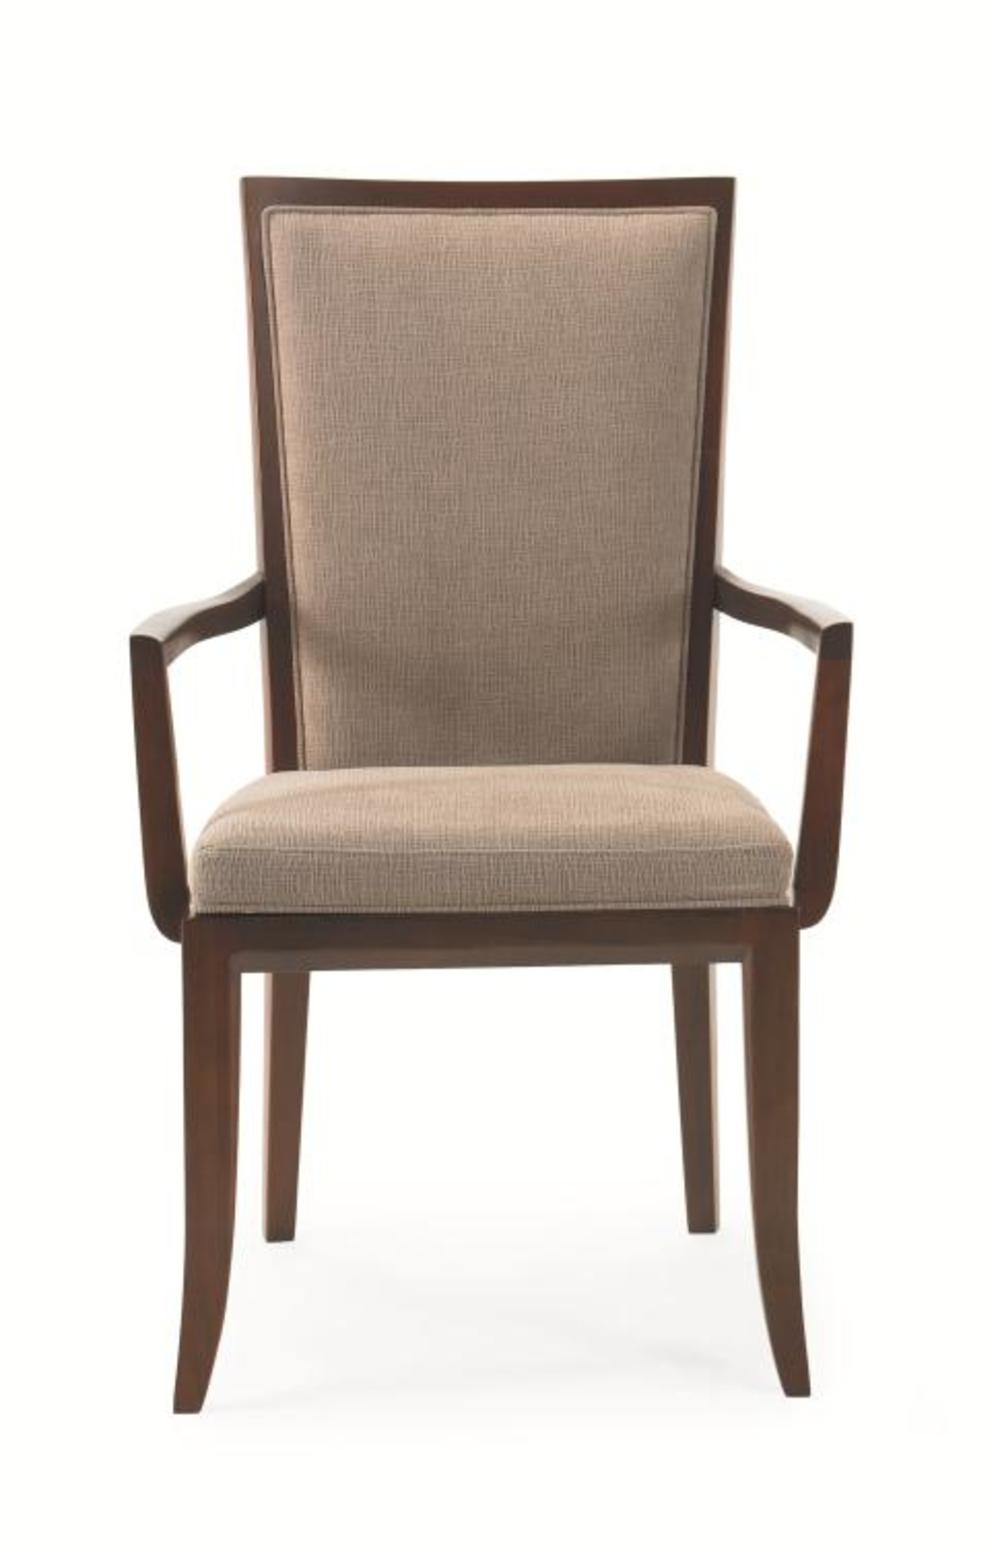 Century Furniture - Luna Park Arm Chair